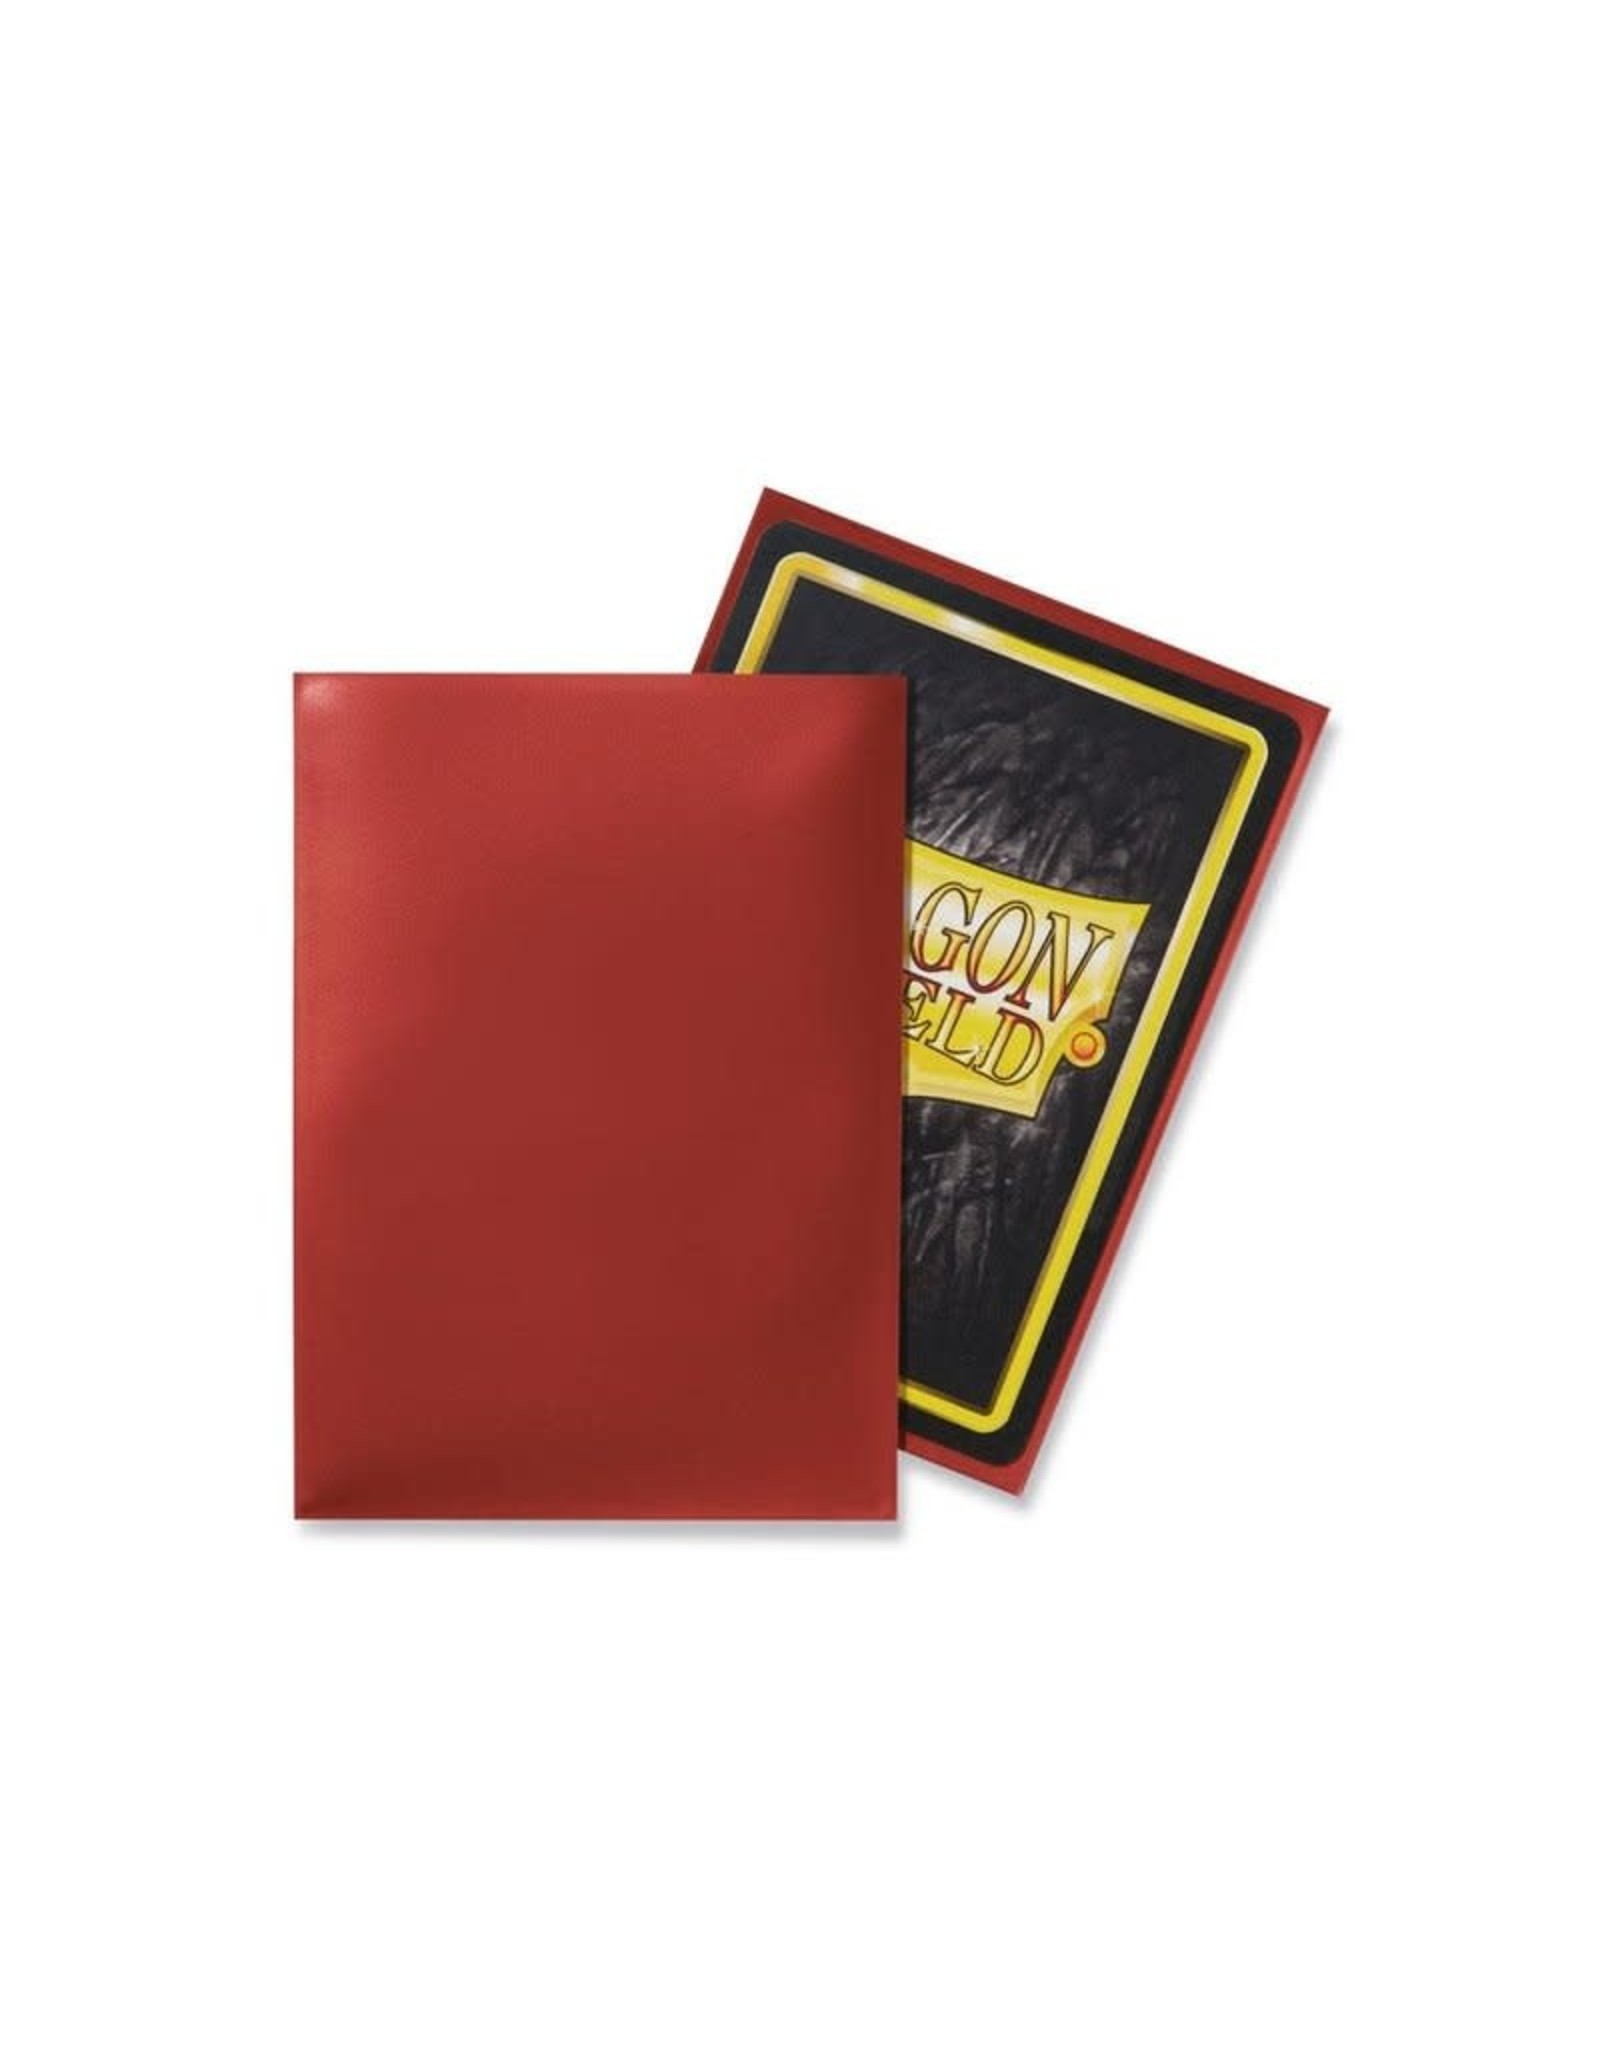 Arcane Tinmen DRAGON SHIELD SLEEVES RED CLASSIC 100CT